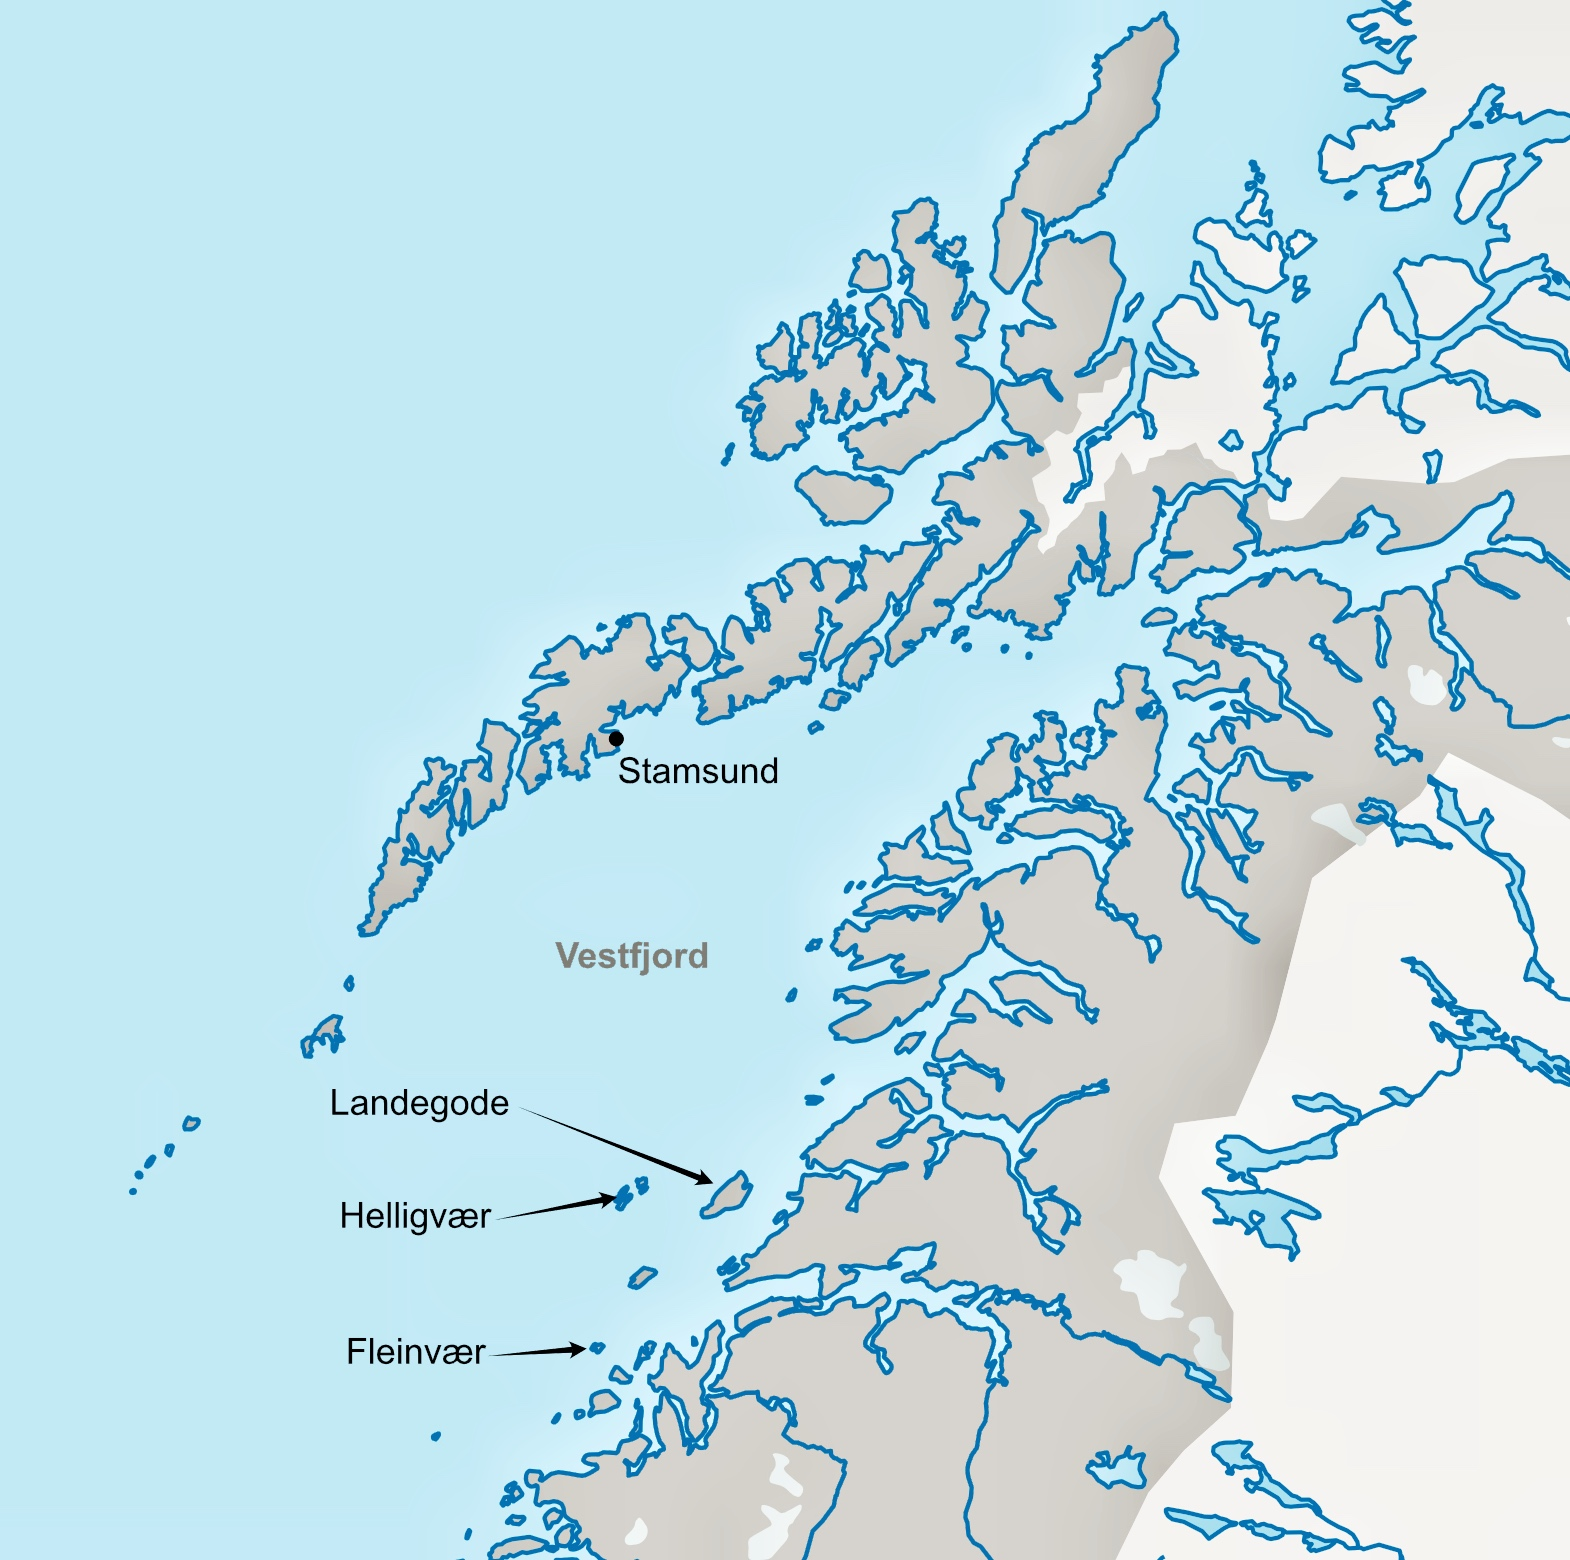 A map of the Lofoten archipelago, with places mentioned in the legend marked.